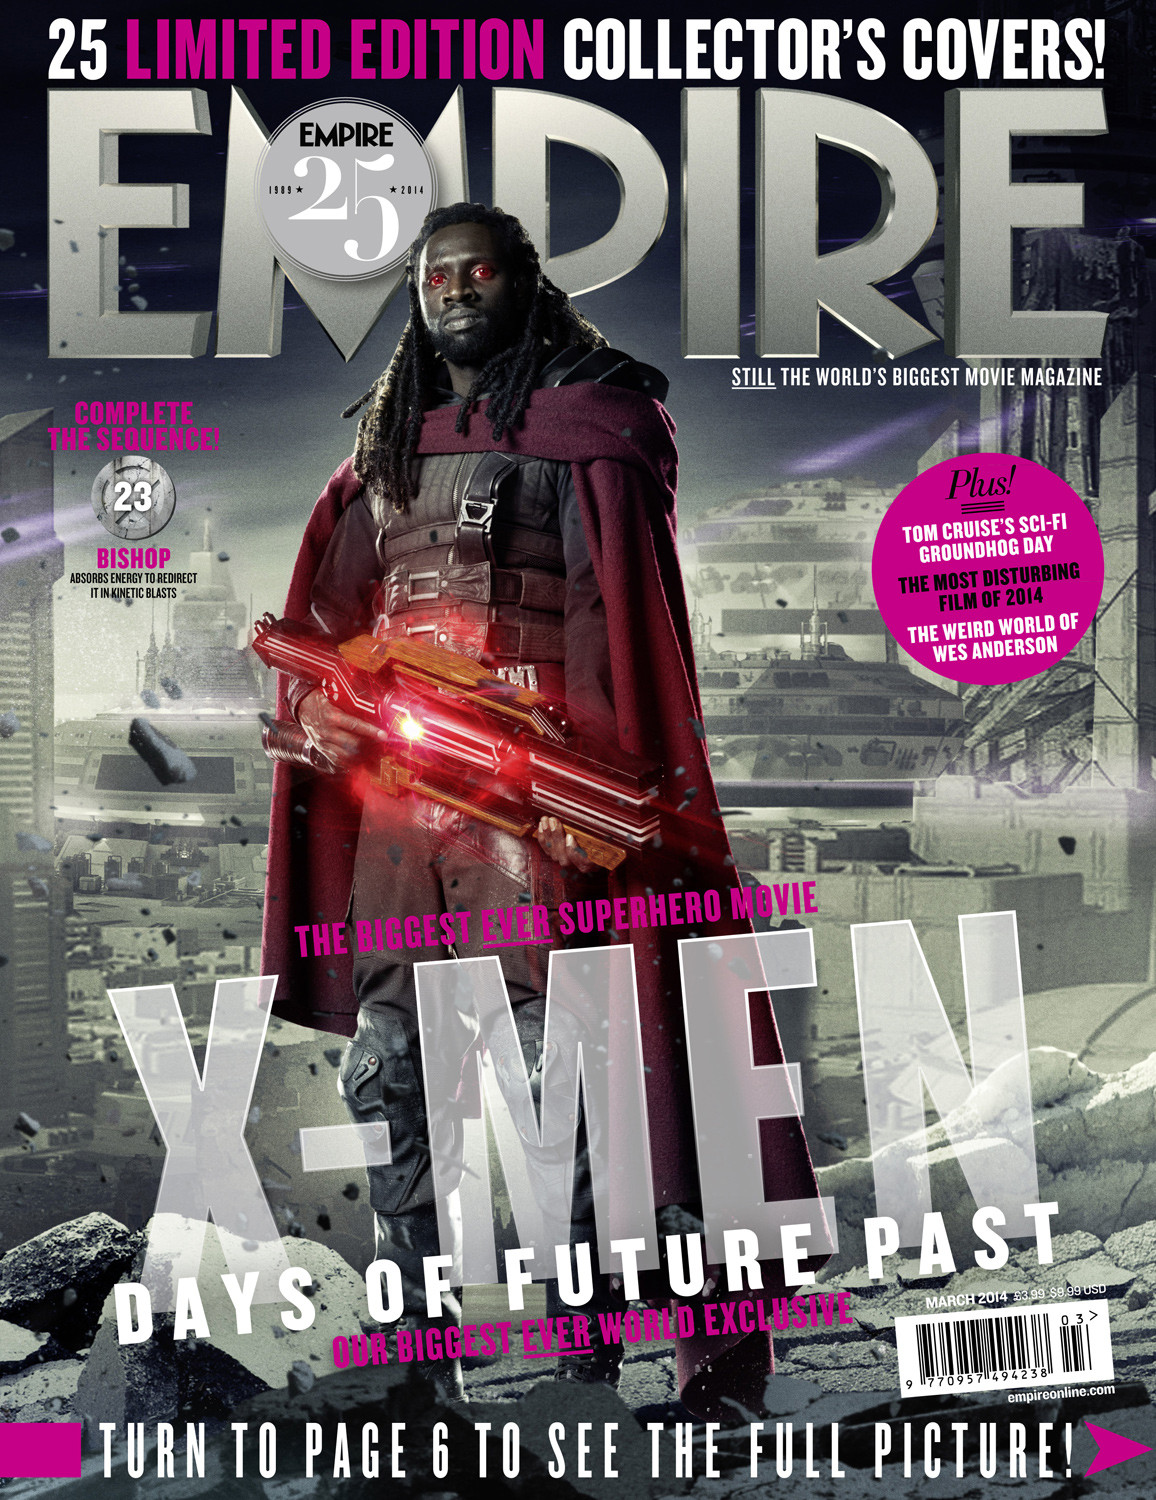 Empire - XDOFP Cover - 023 - Bishop